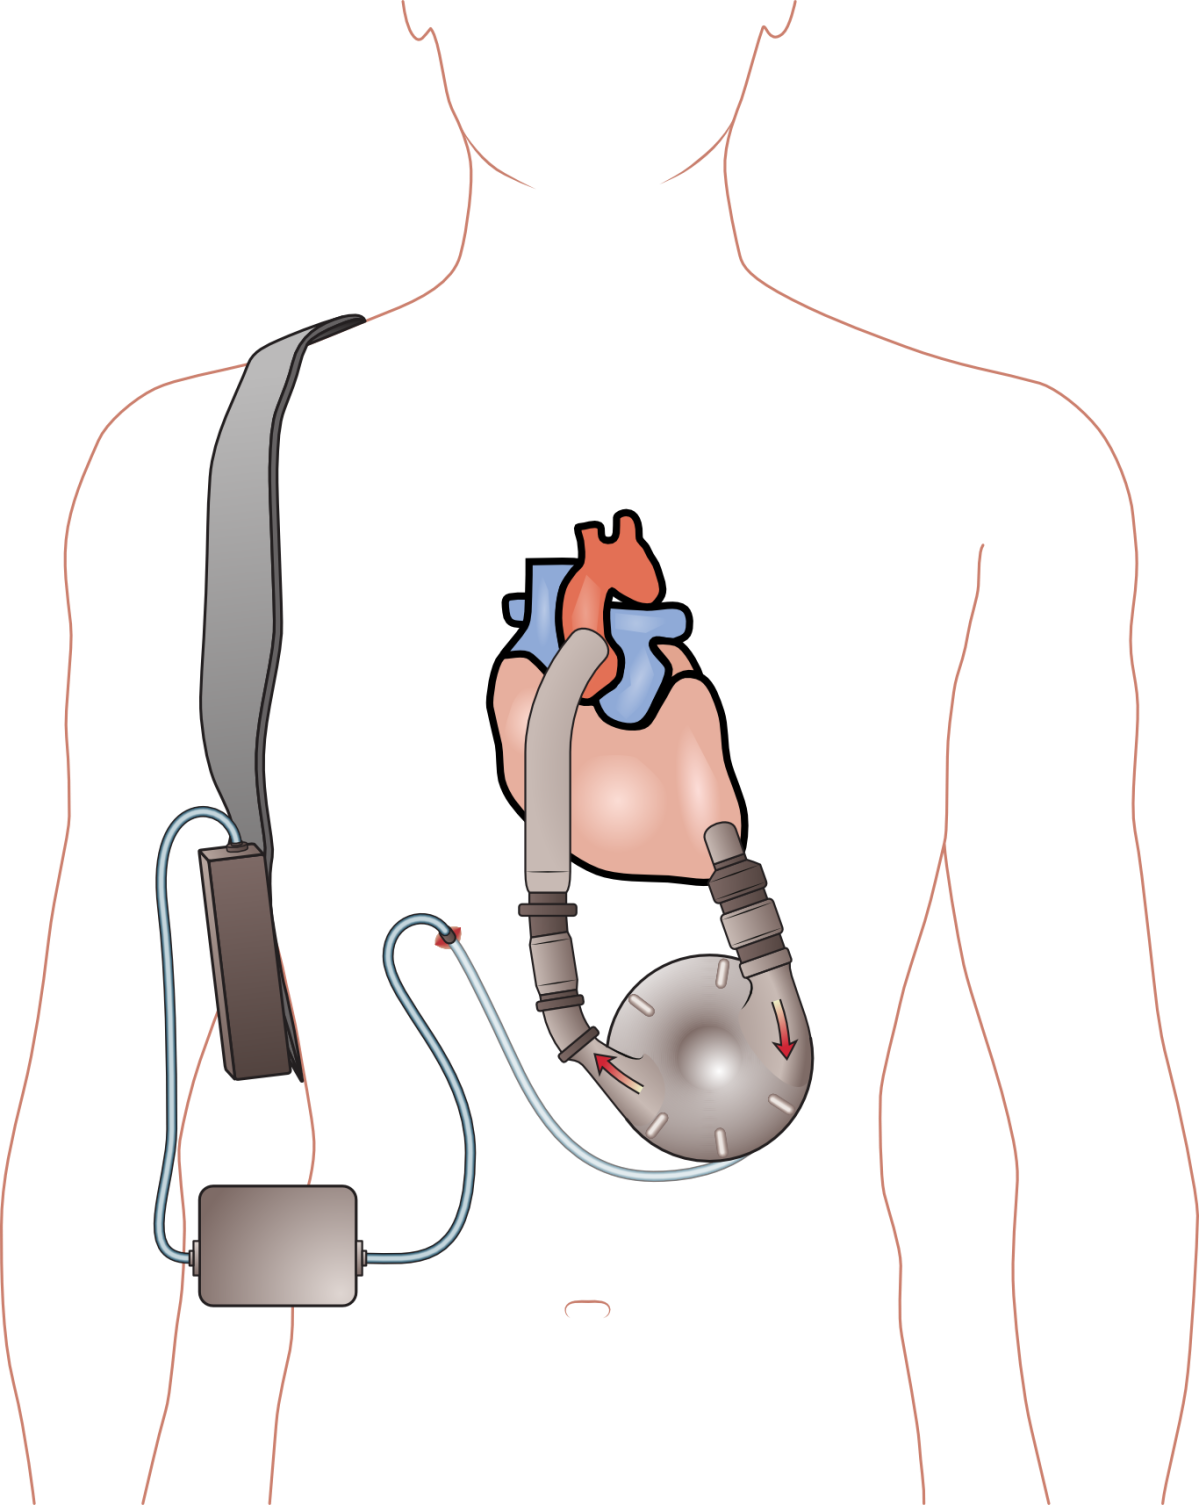 HeartWare vs. HeartMate LVAD